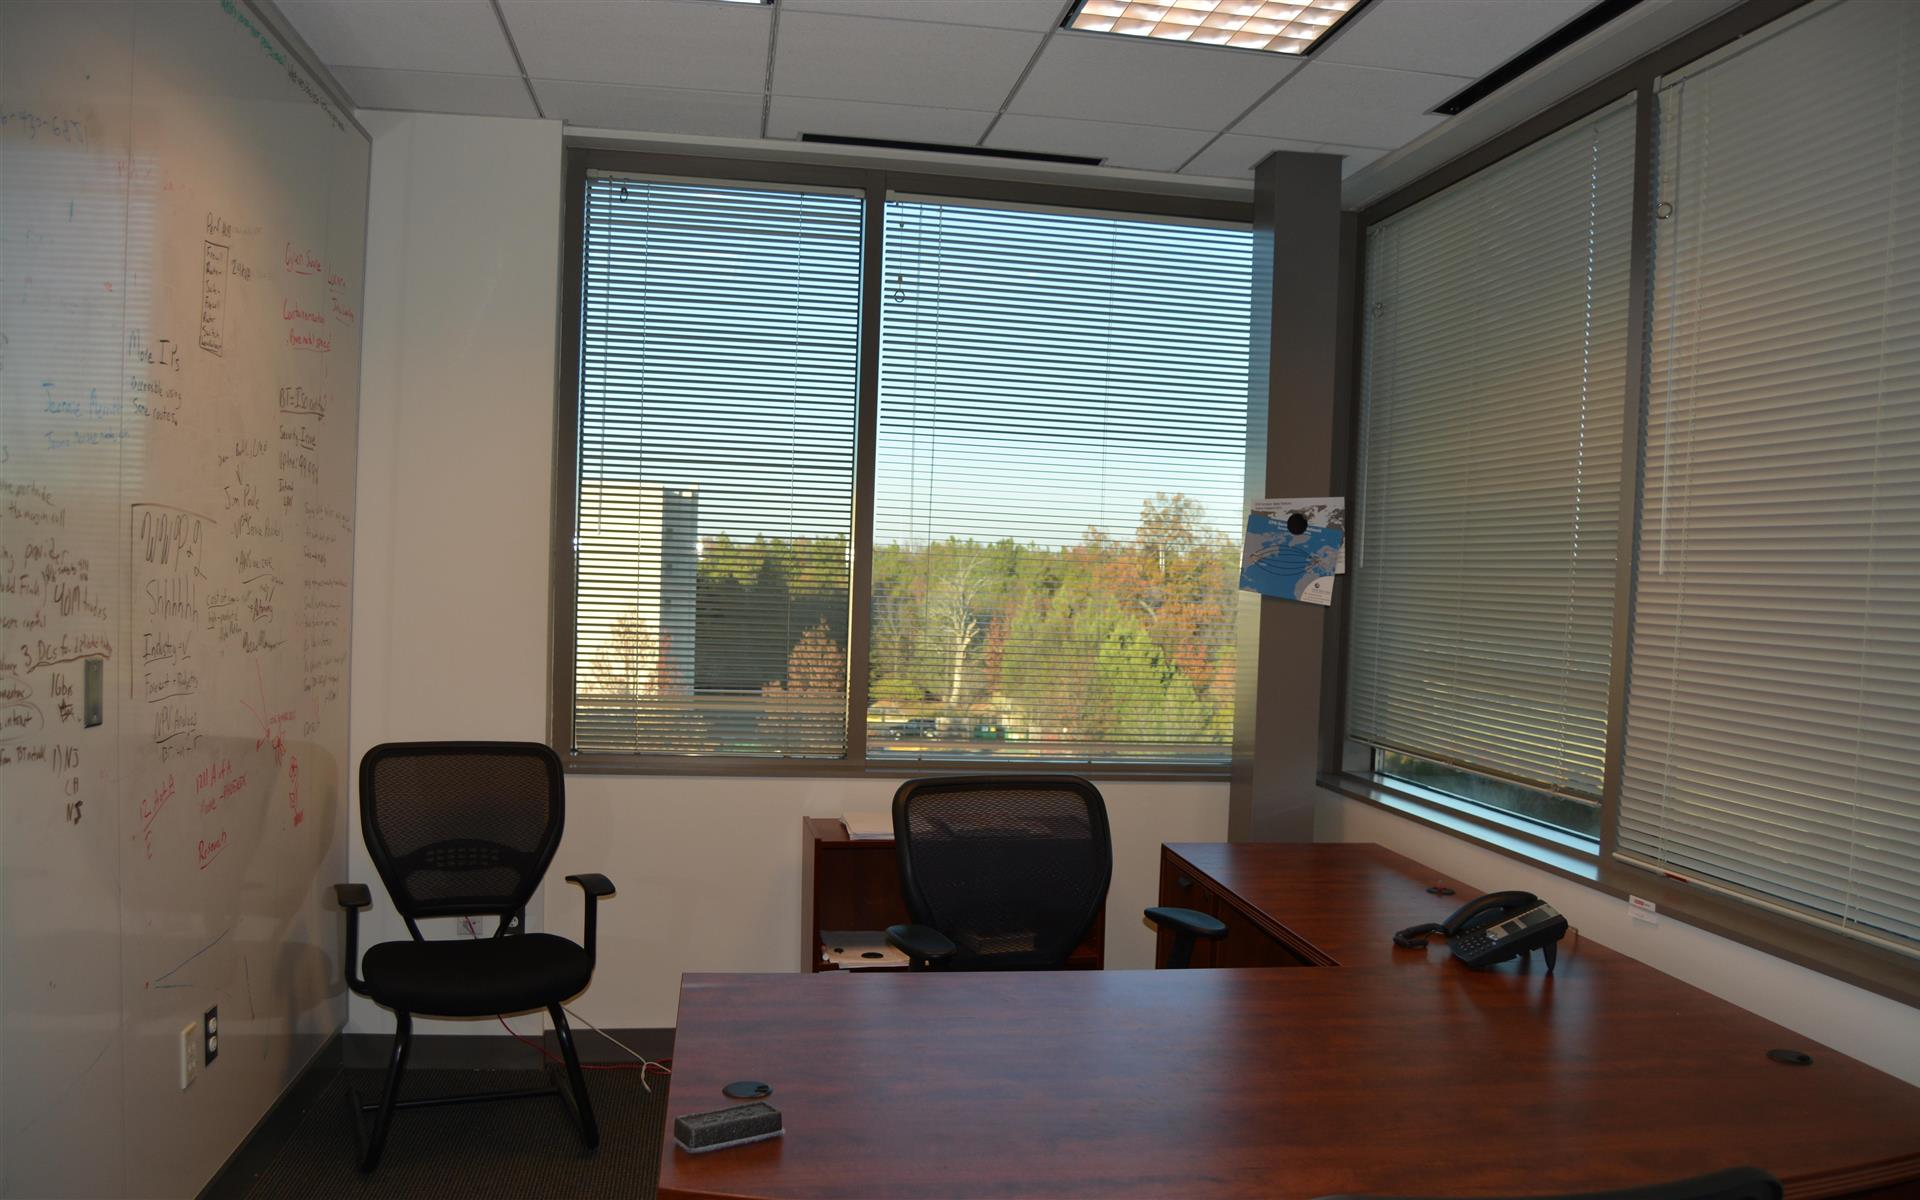 CFN Services - Herndon - The Productive Zone (Private office)